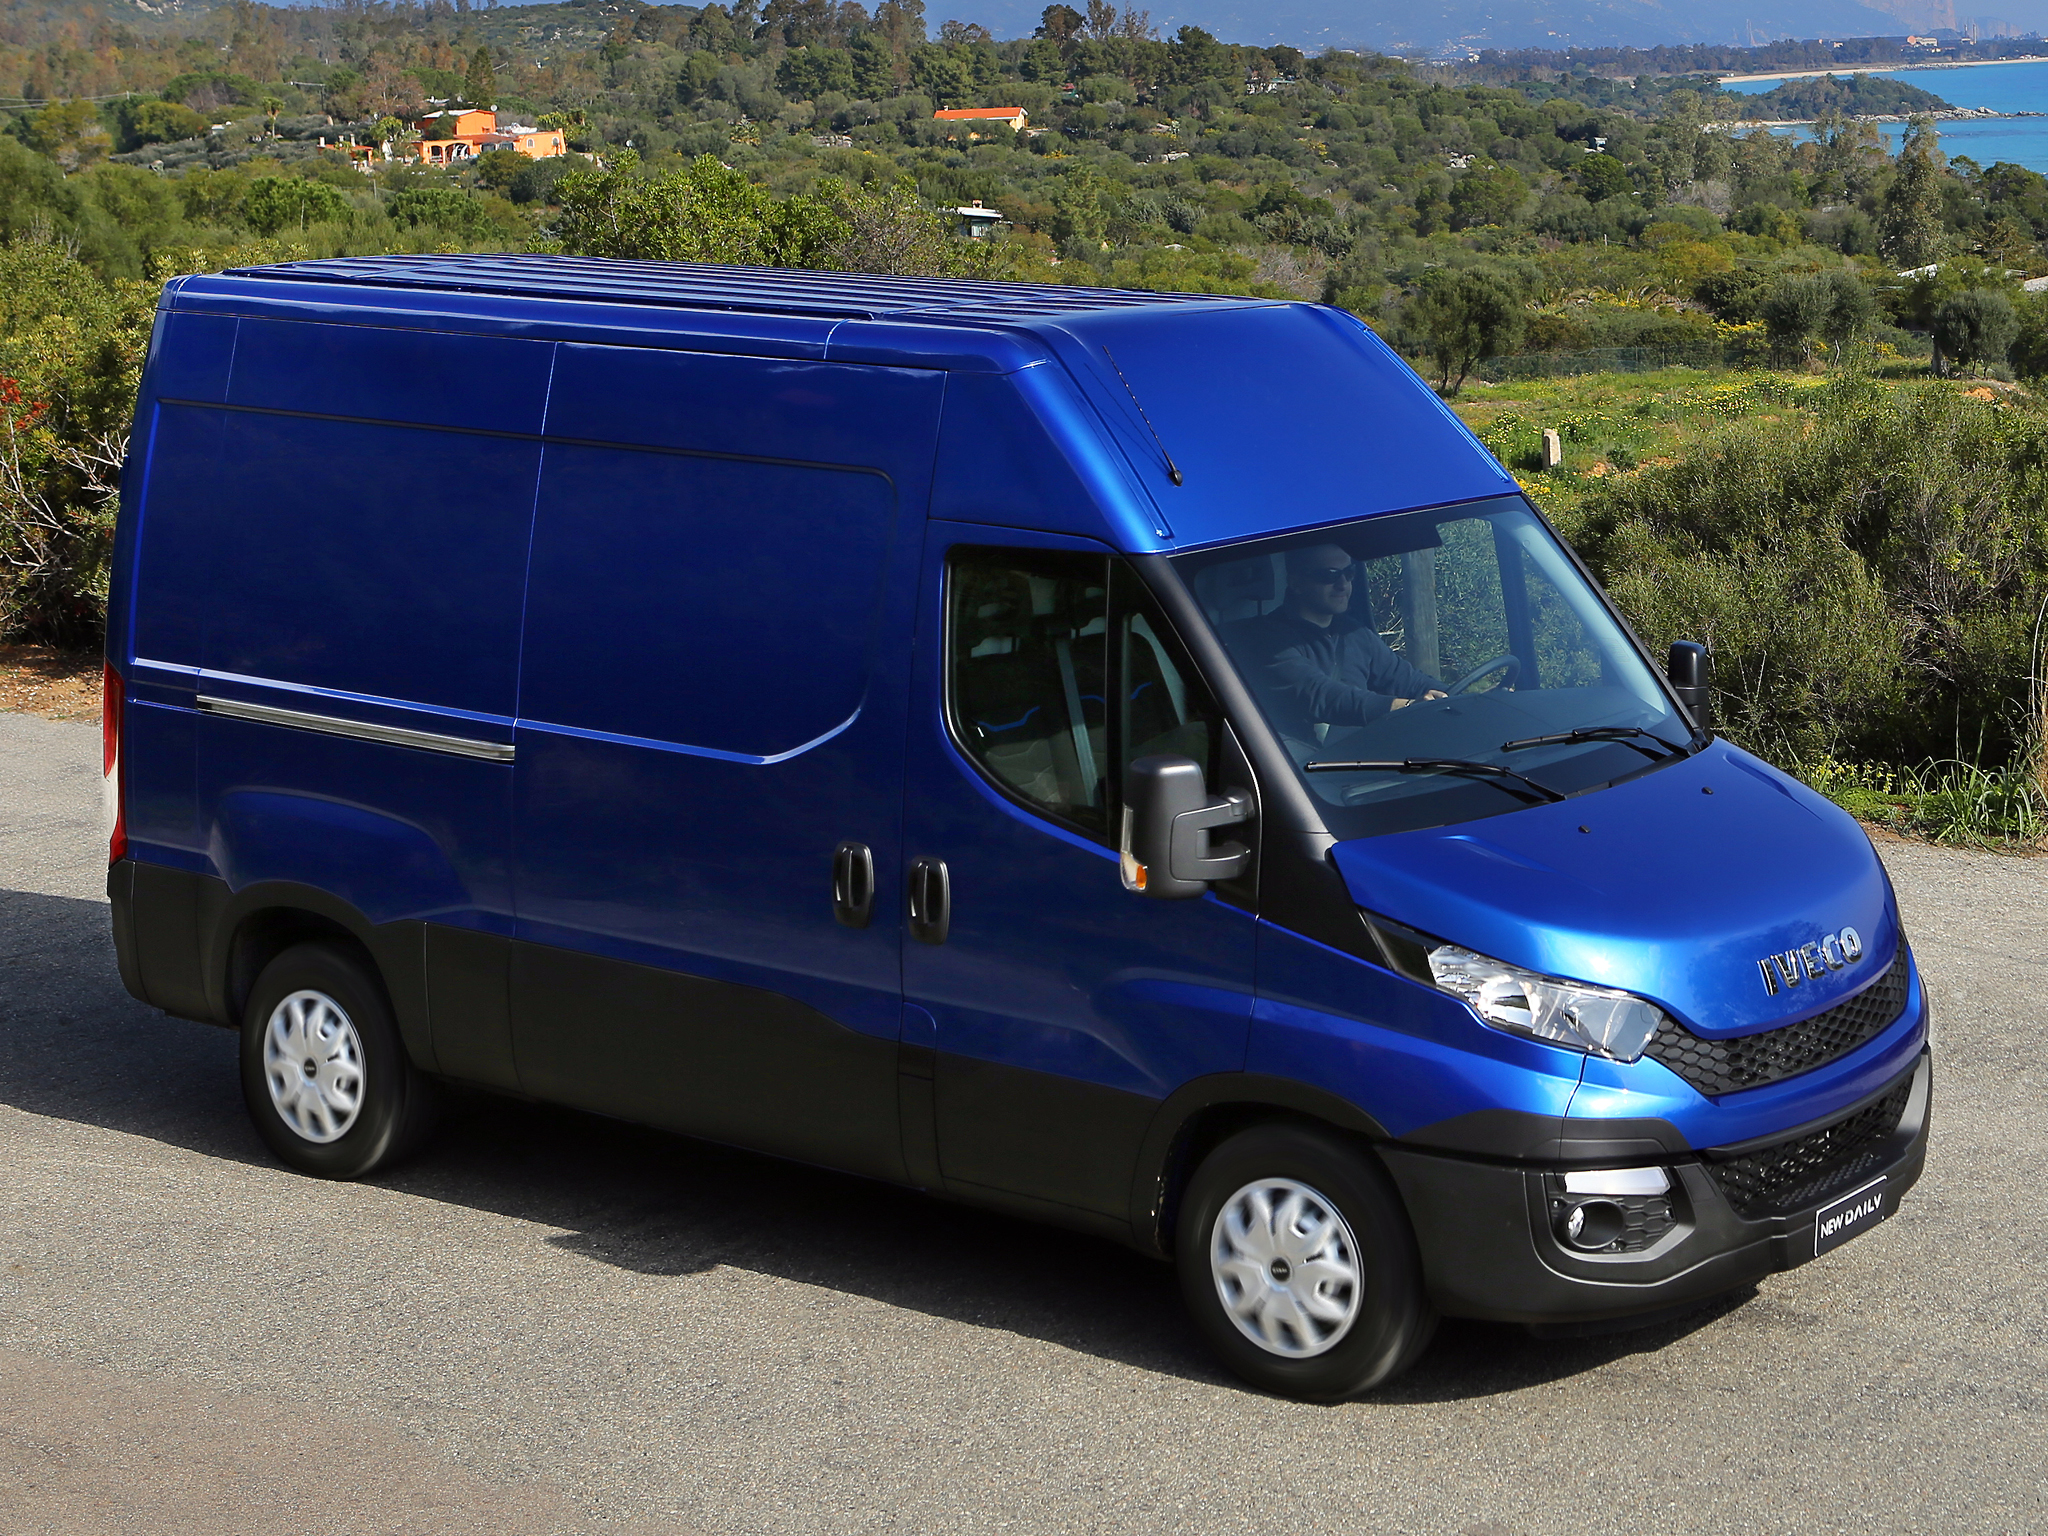 2014 - [Iveco] Daily - Page 3 Iveco-reveals-the-new-daily-for-2014-say-it-s-80-redesigned-photo-gallery_26